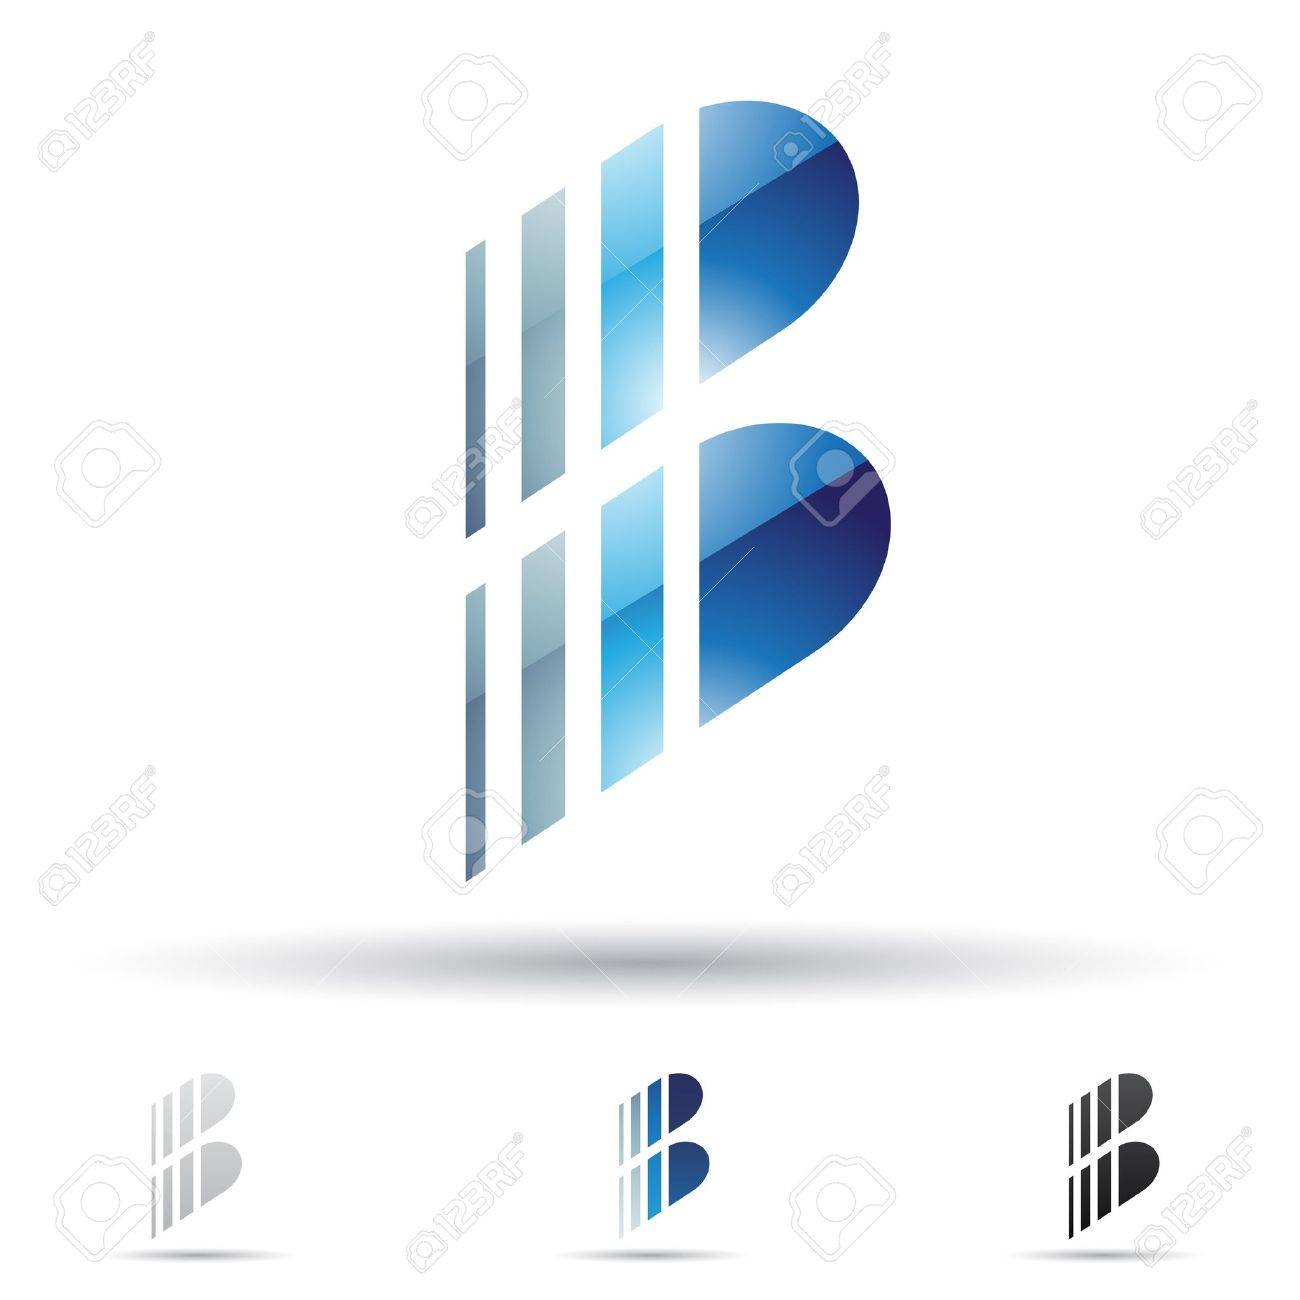 abstract icons based on the letter B Stock Vector - 14594430